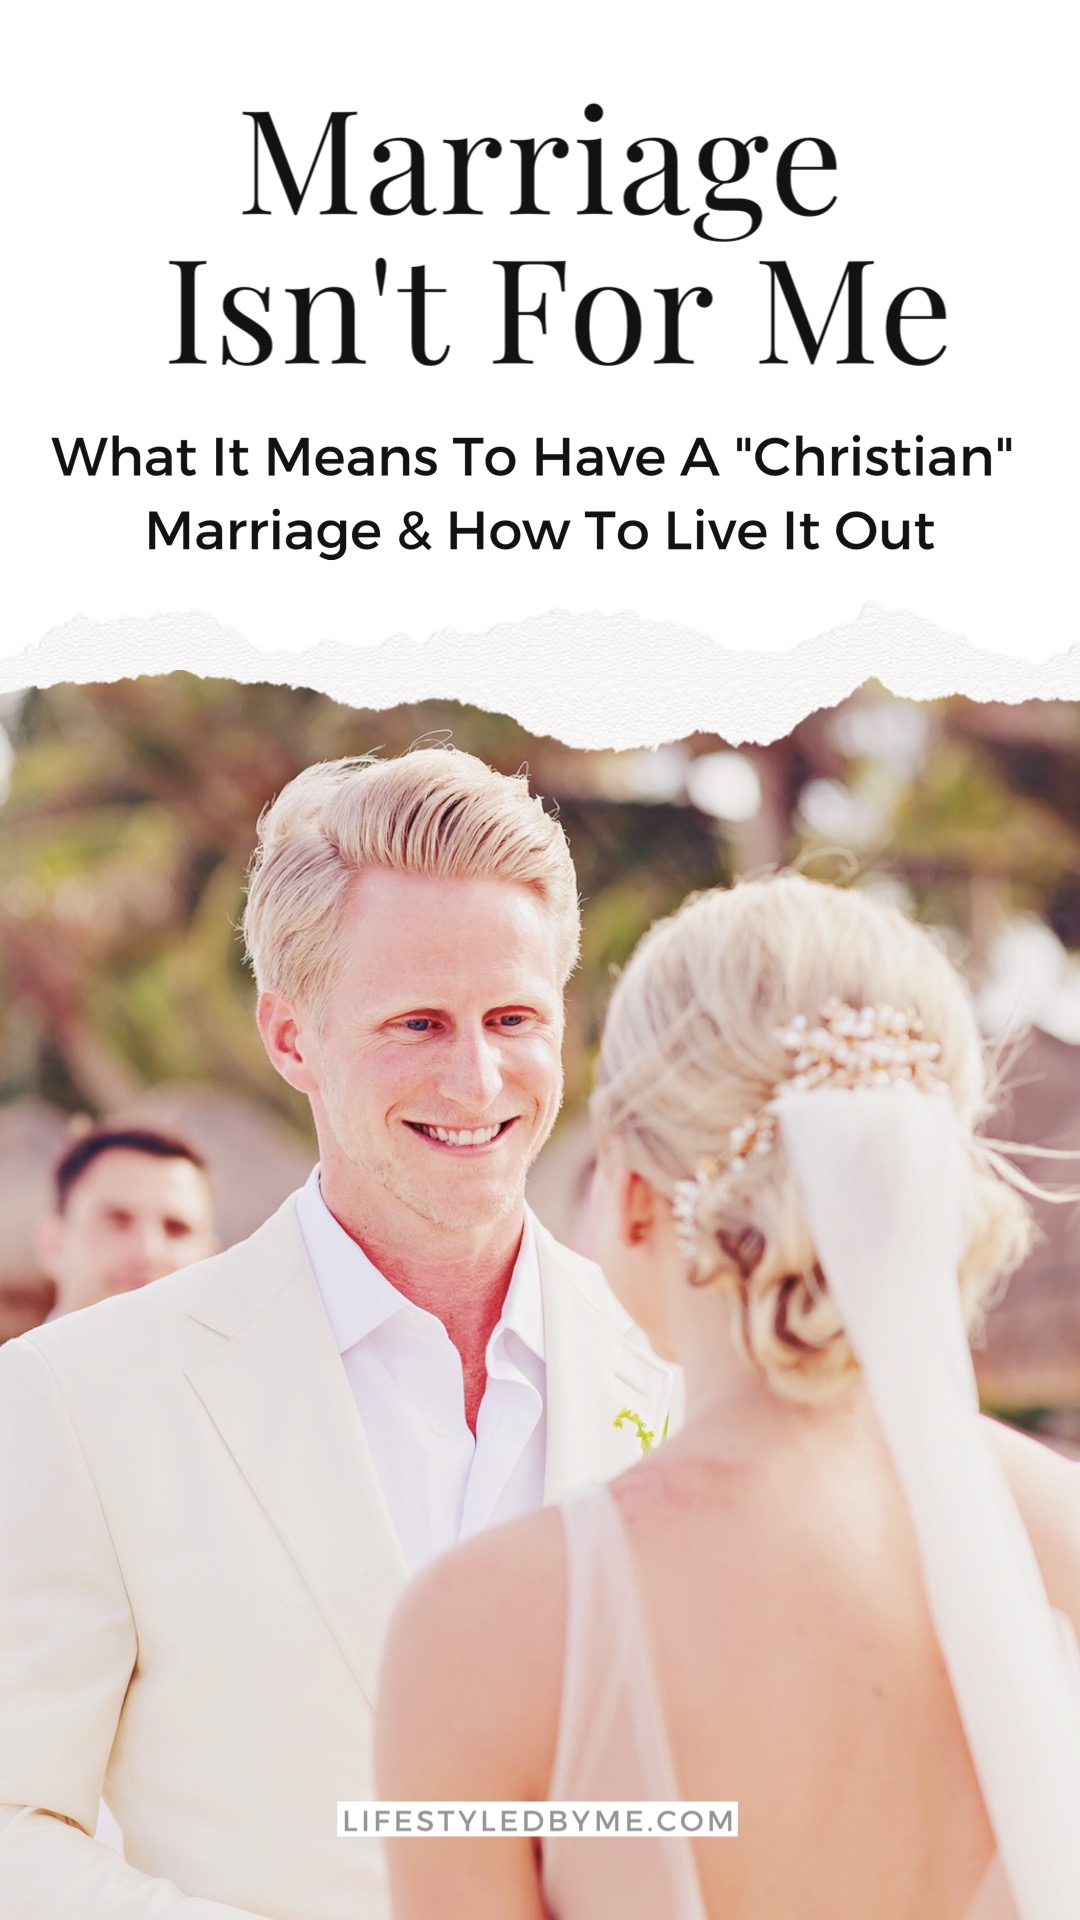 Marriage Isn't for Me What It means to have a Christian Marriage and How to Live it out Life:Styled by M.E. Blog post Pinterest Image